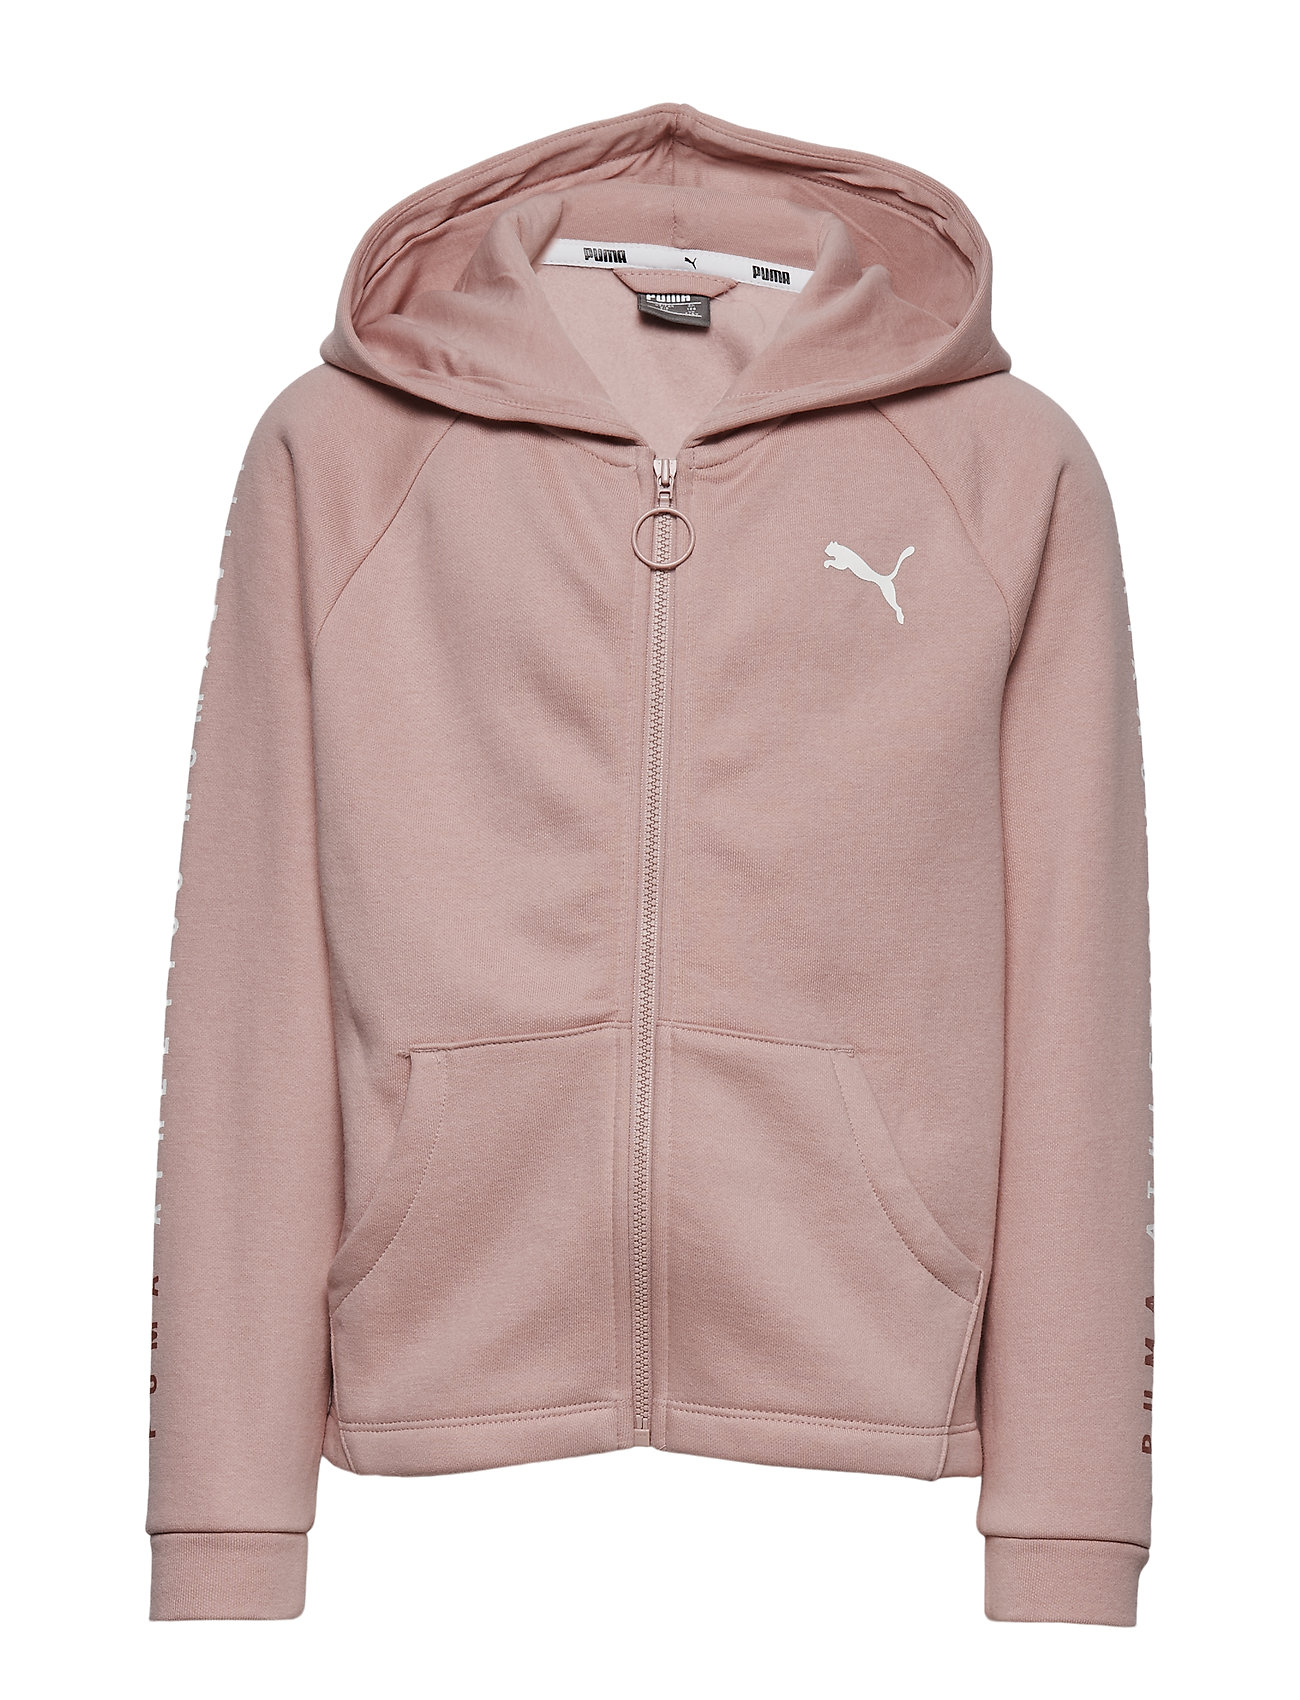 PUMA Alpha Jacket G - BRIDAL ROSE